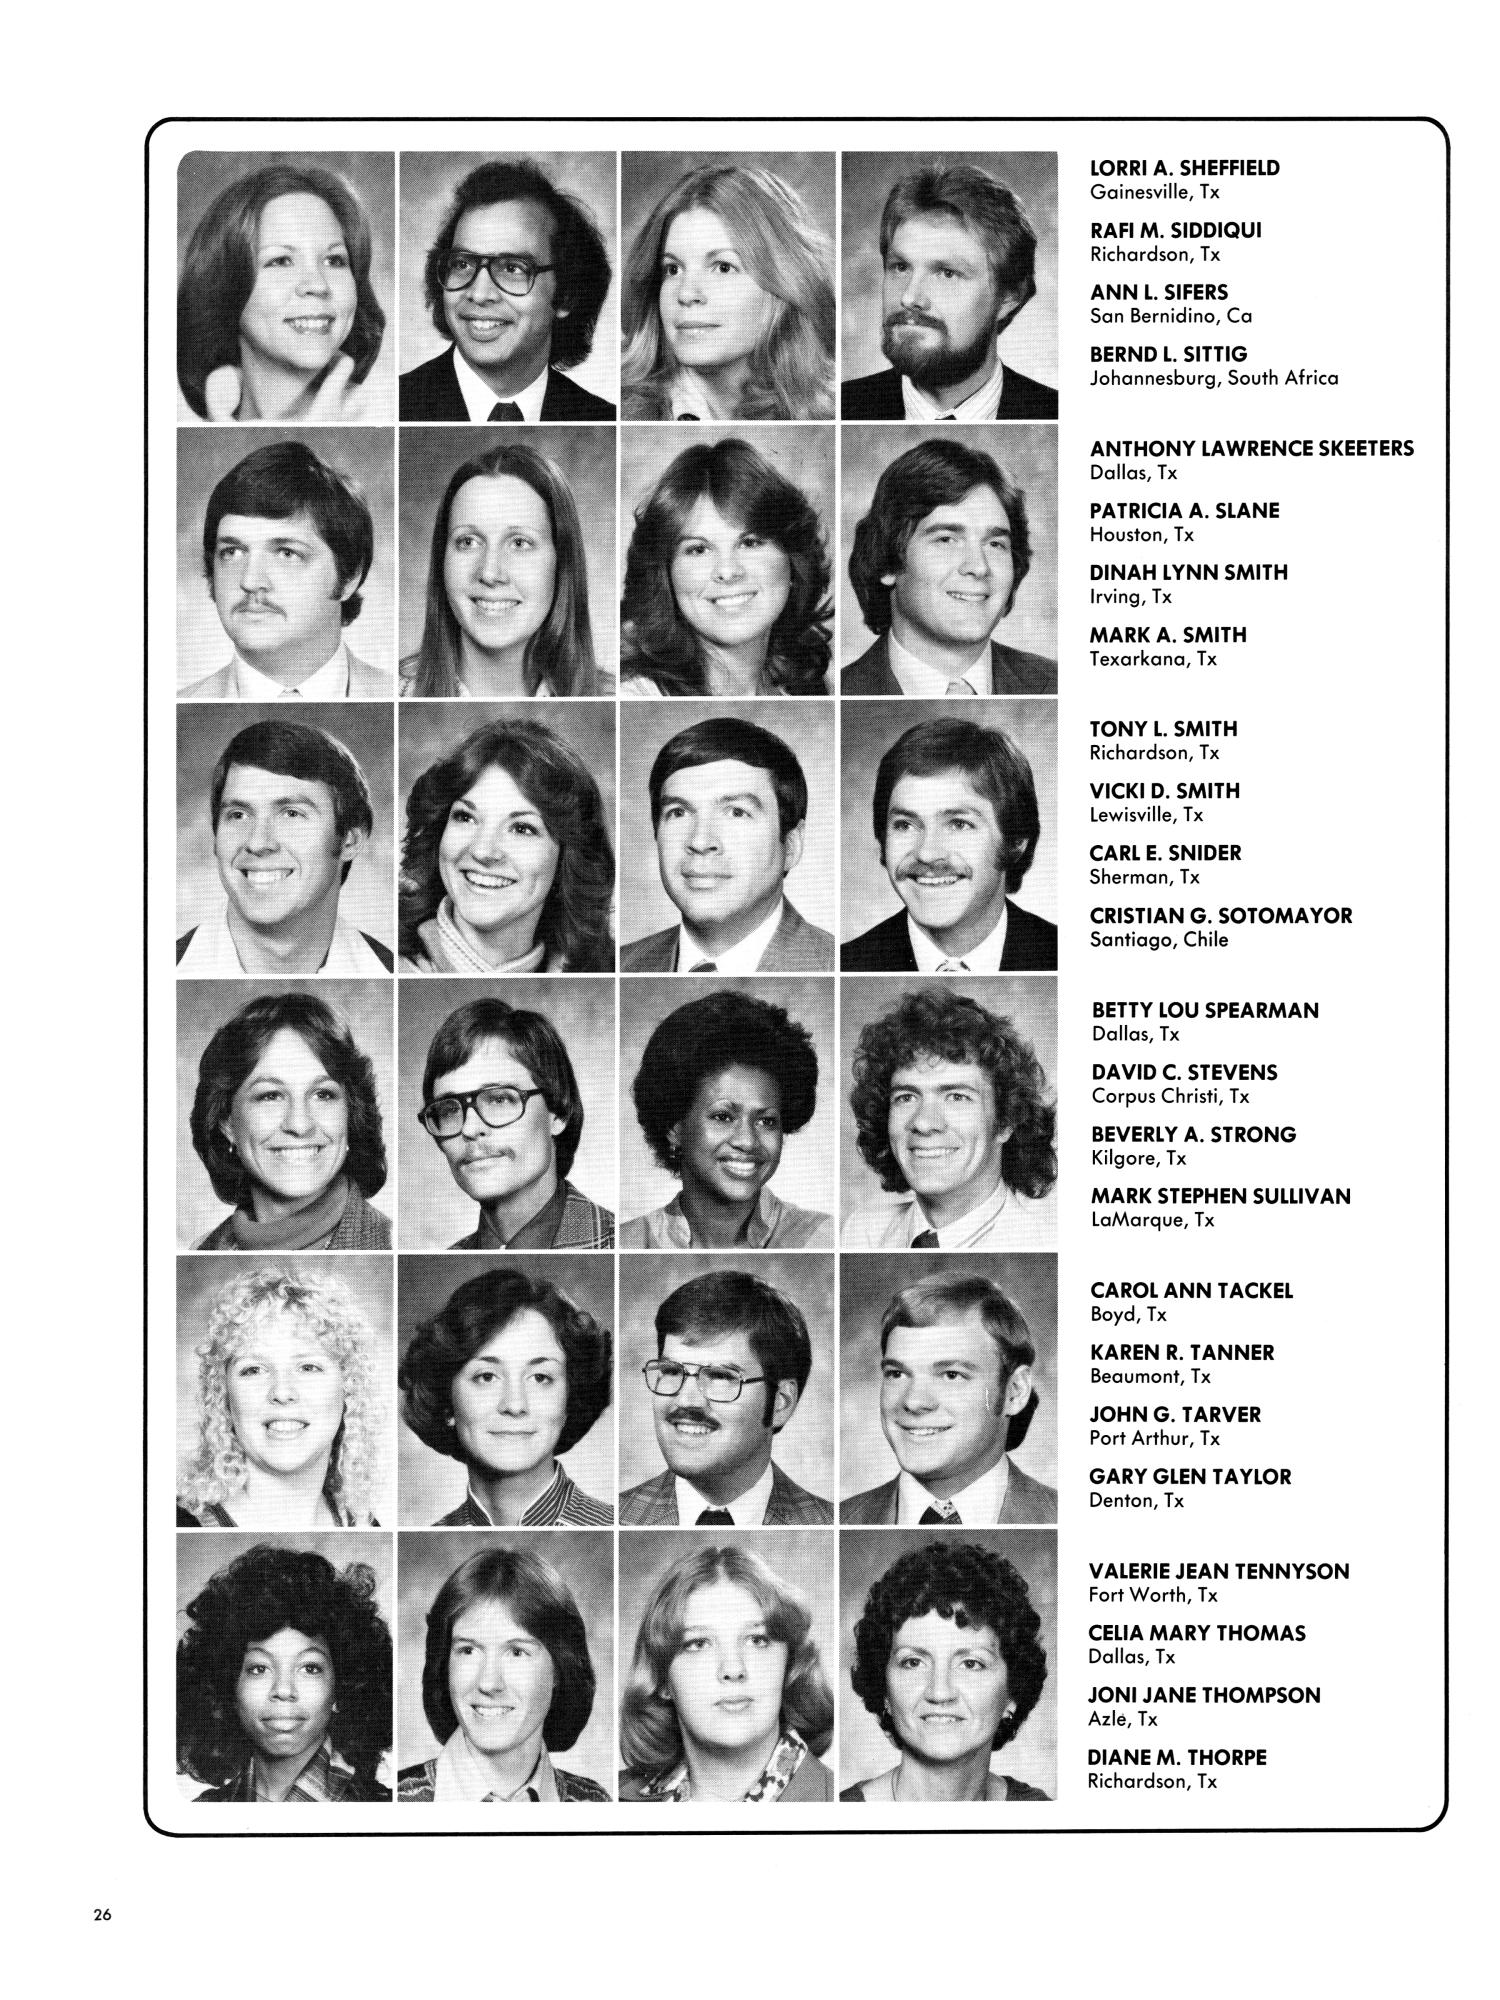 wings yearbook of north texas state university 1978 page 26 wings yearbook of north texas state university 1978 page 26